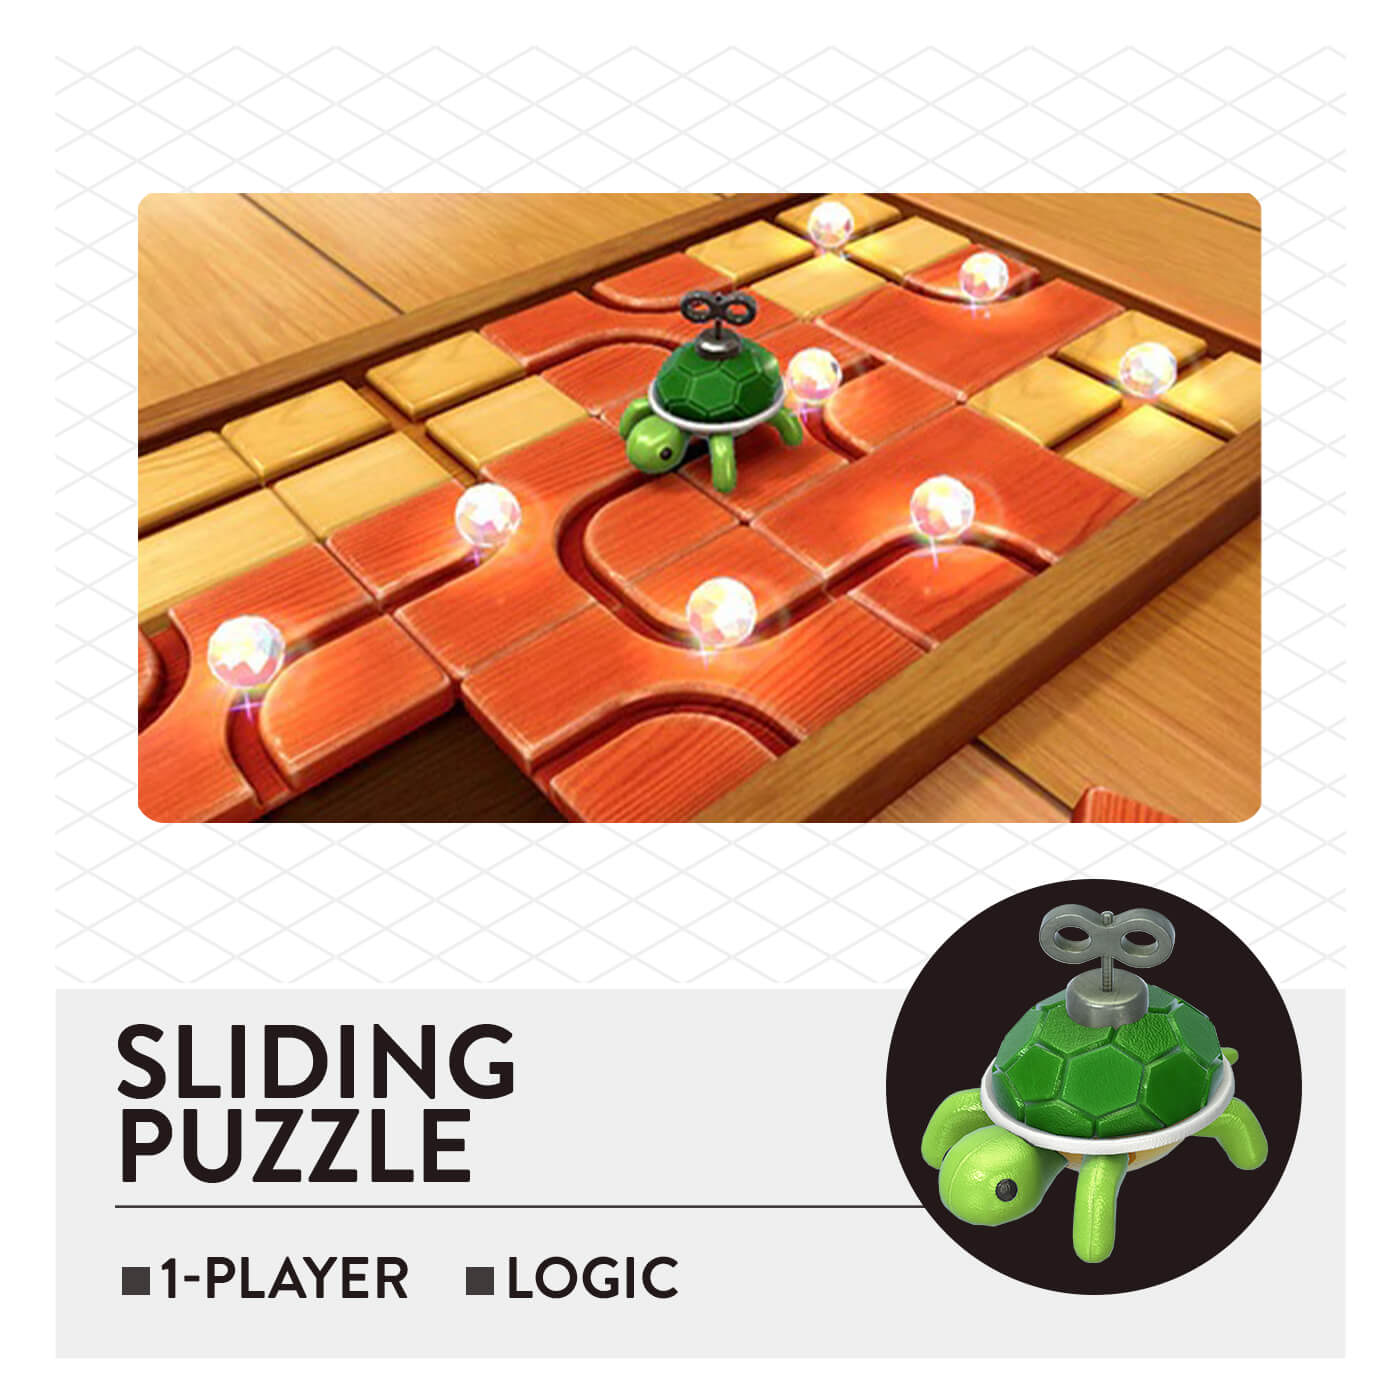 51 Worldwide Games - Sliding Puzzle